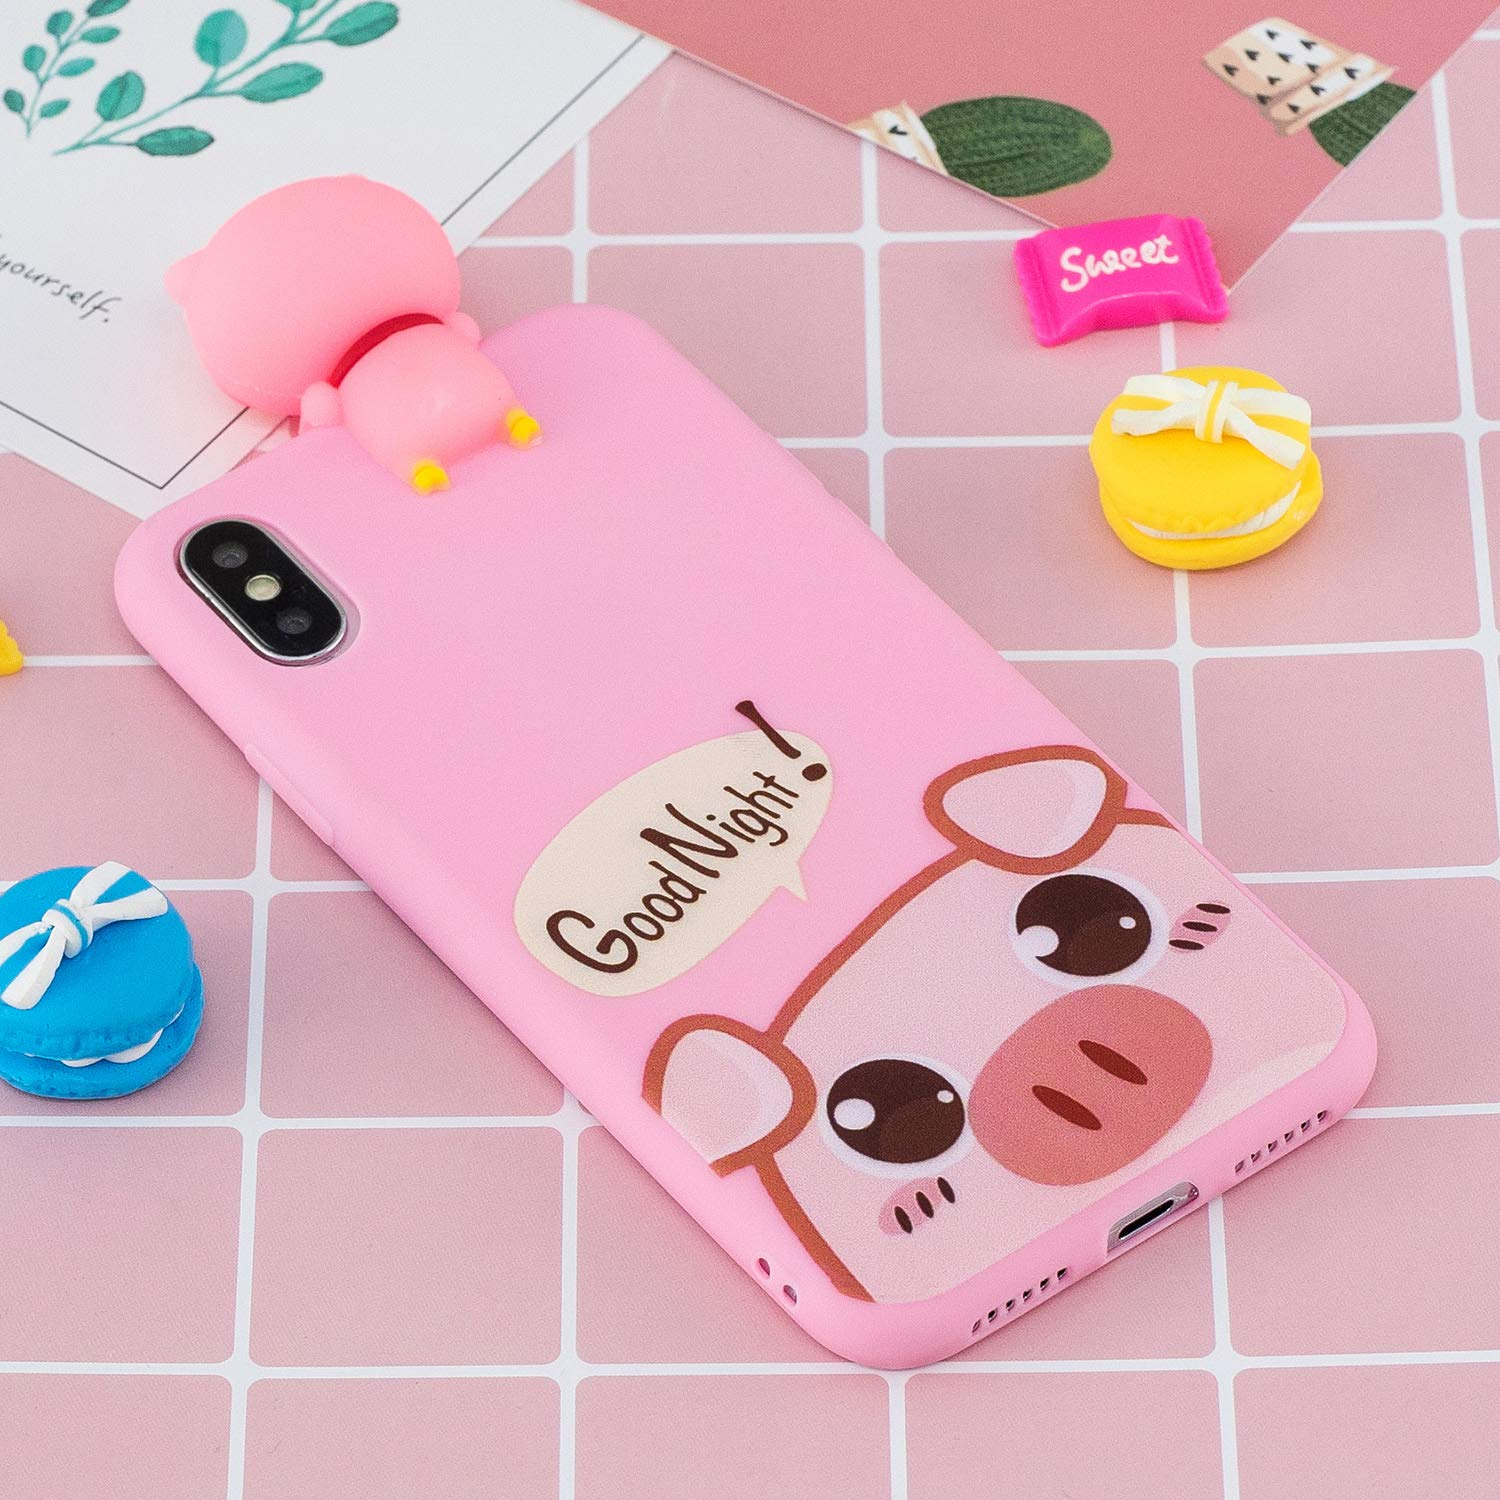 2018 Release iPhone Xs Max Case,DAMONDY Cute 3D Cartoon Animals Pattern Design Soft Silicone Gel Slim Rubber Thin Protective Cover Phone Case for iPhone Xs Max 6.5 Inch -Cute Pig